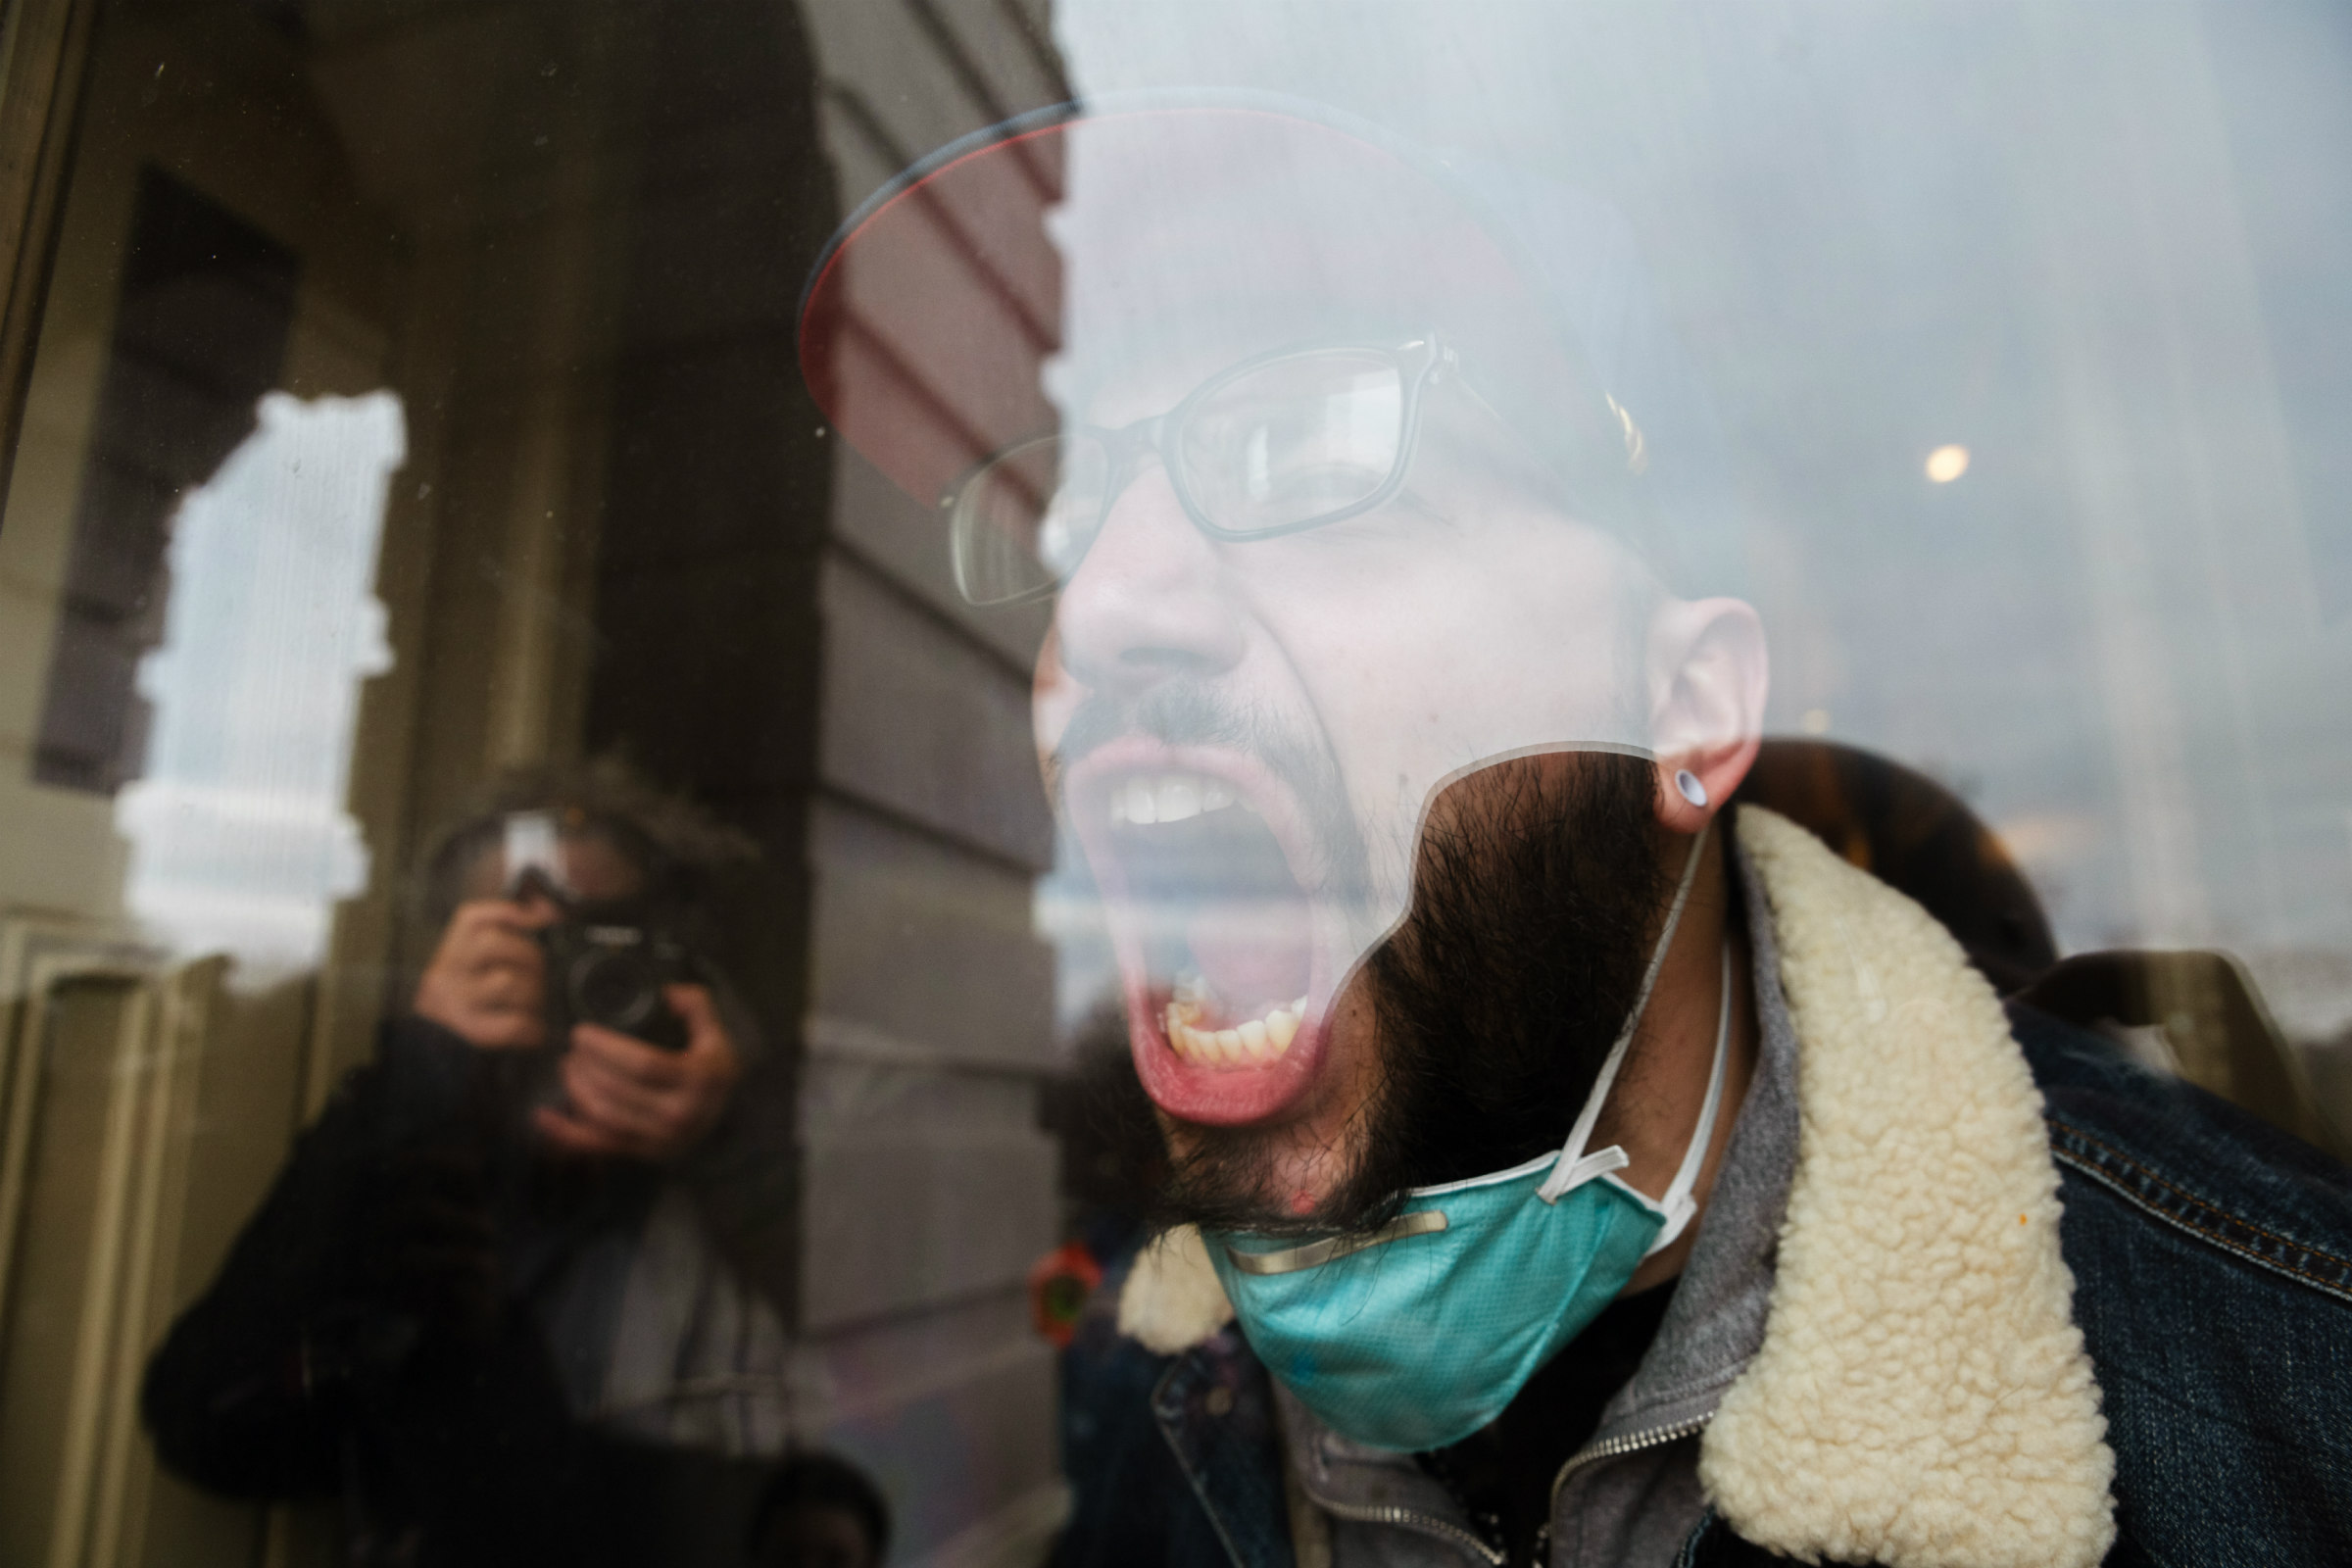 a white person wearing a blue hat scream and a mask around his chin screams from a behind a glass at a camera